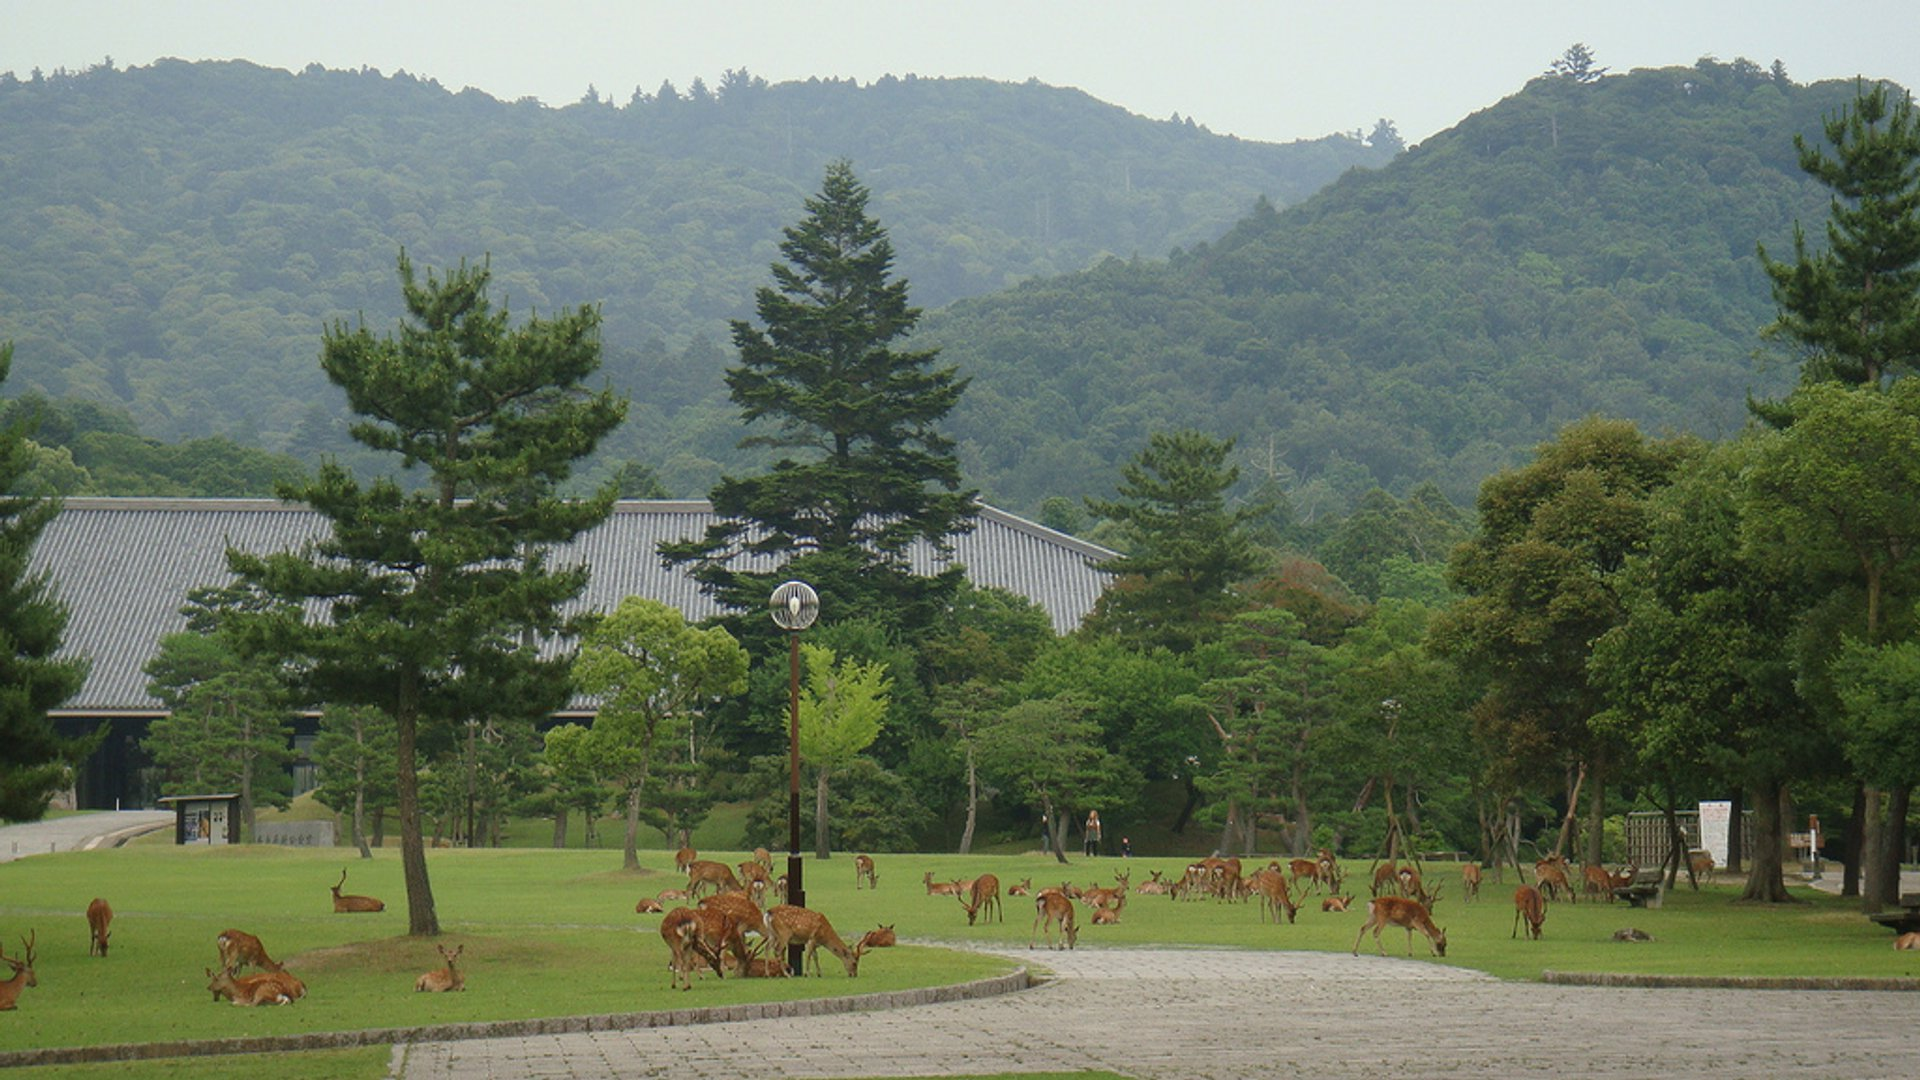 Baby Deer at Nara Park in Japan - Best Season 2020